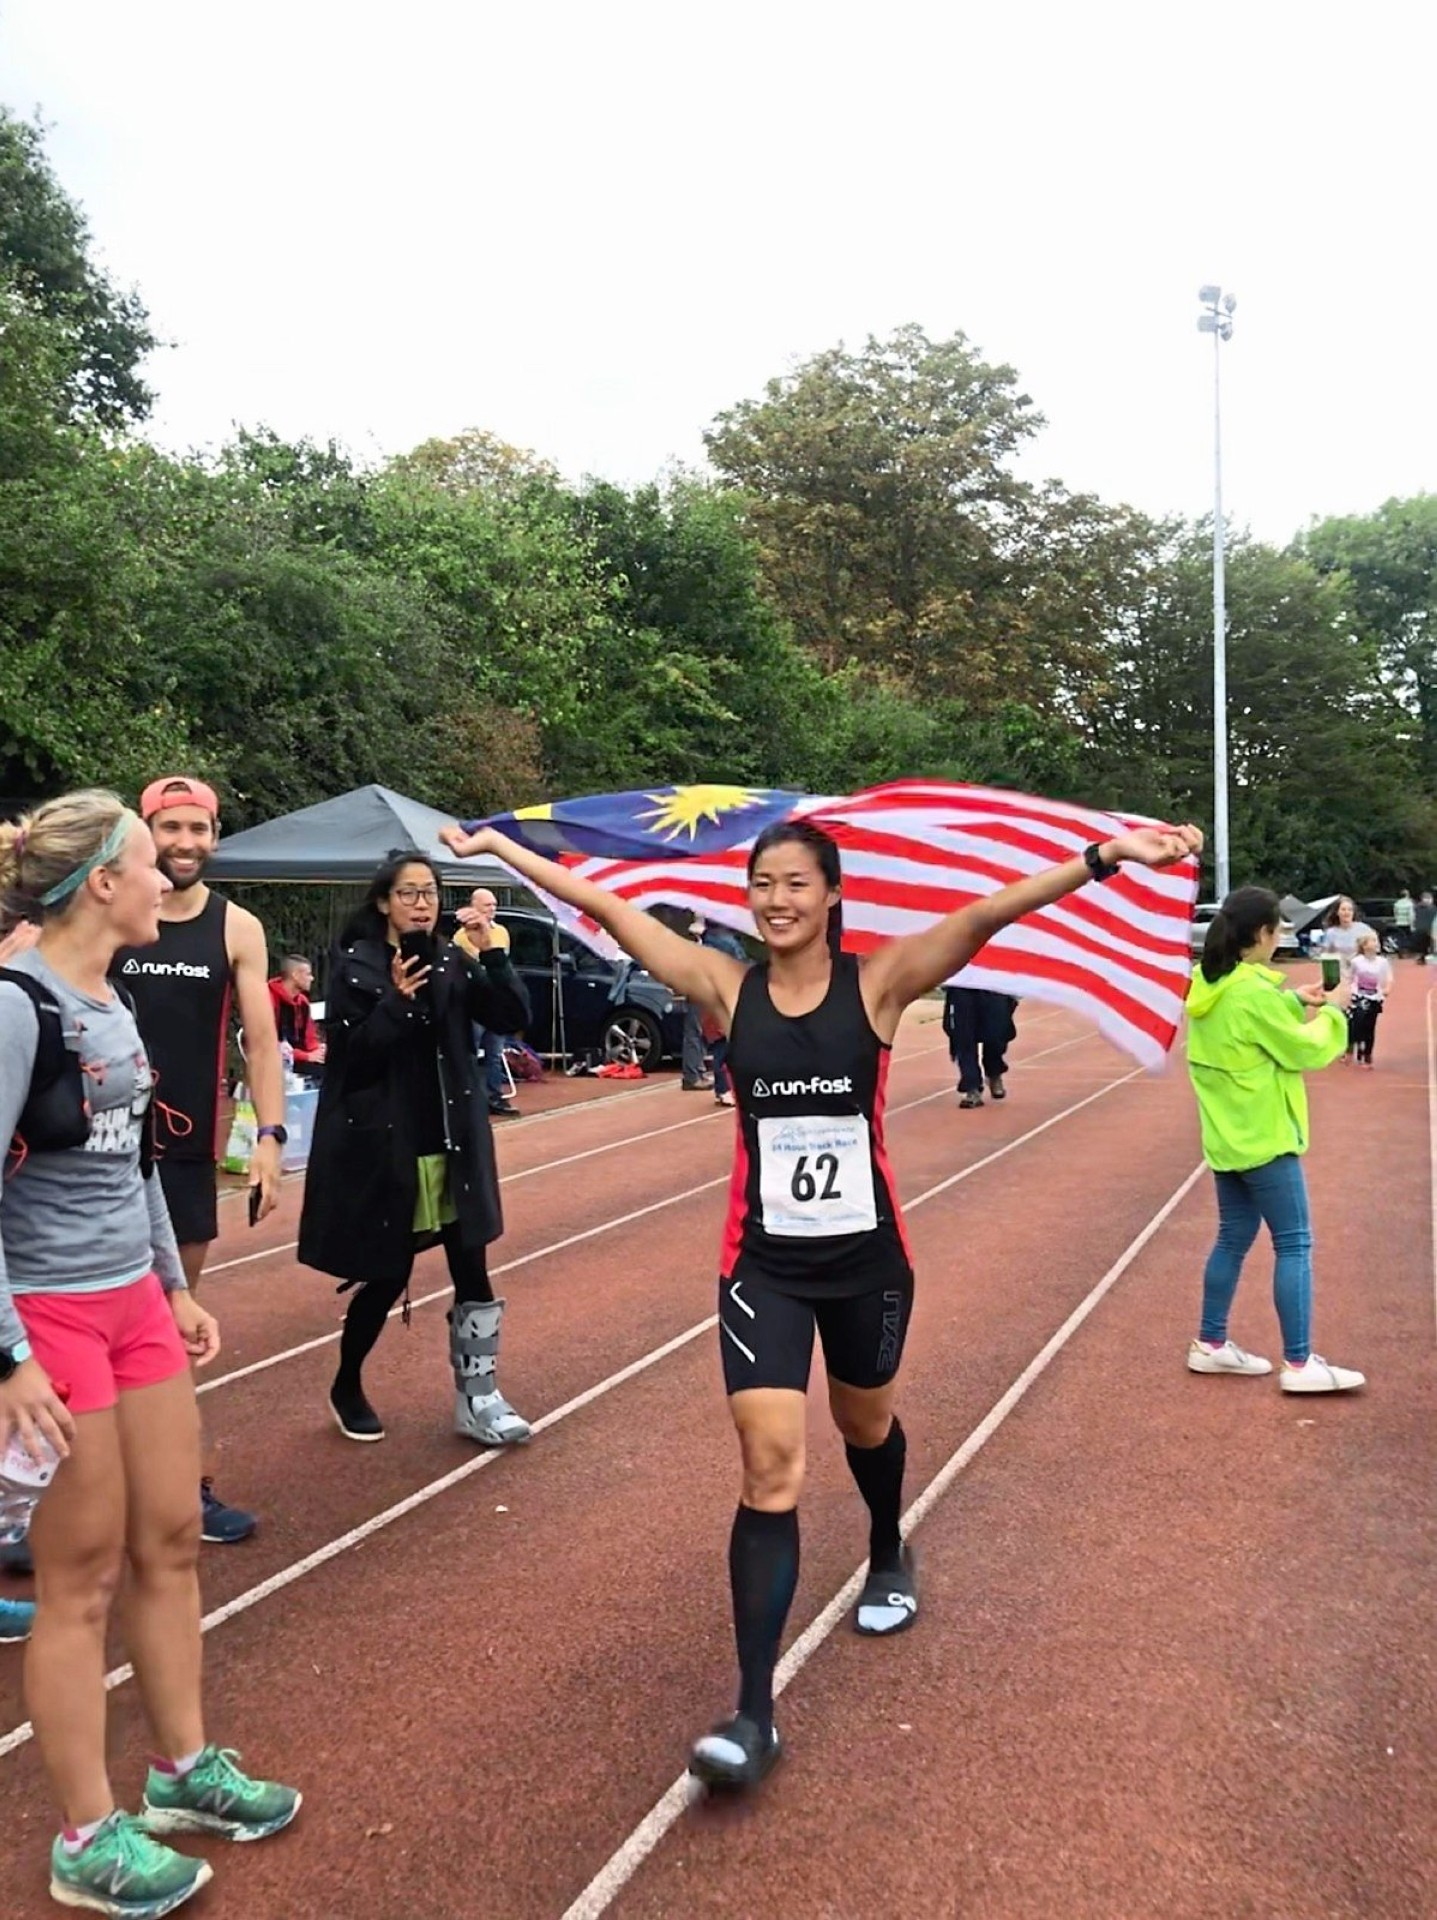 Walker came in third in the women's category and broke six national records at the Sri Chinmoy Self-Transcendence 24-hour race in September. Photos: Alison Walker